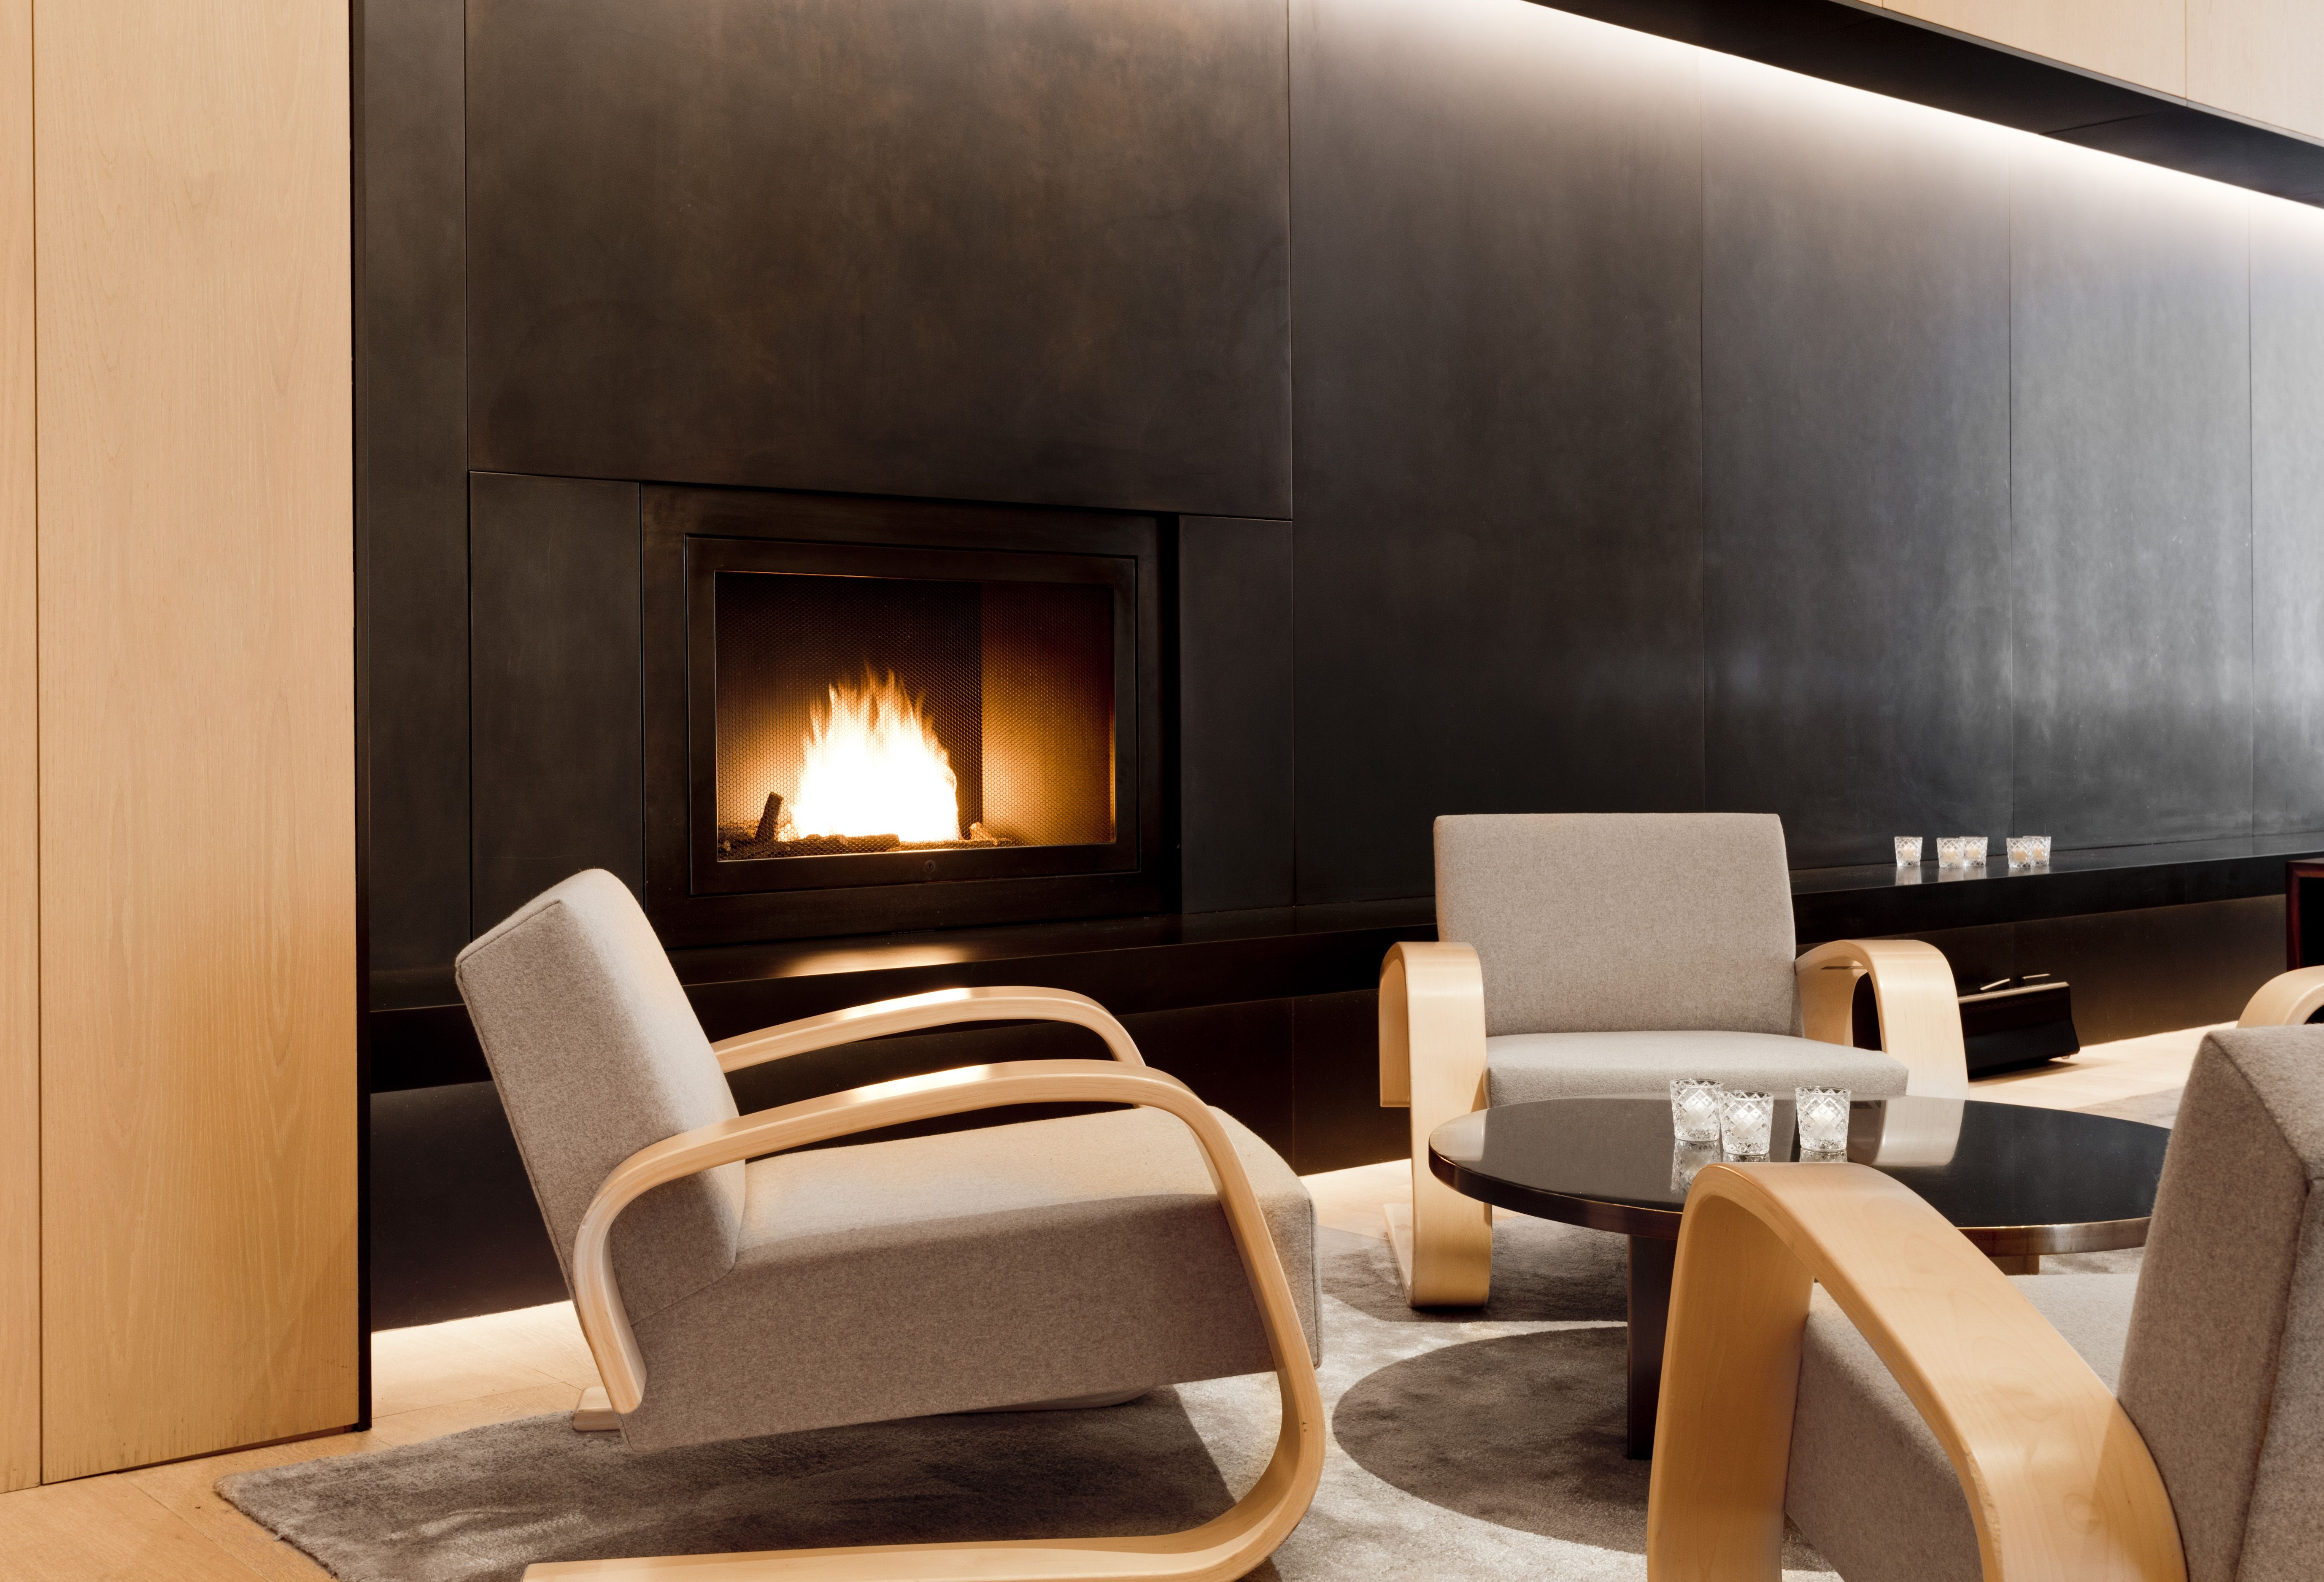 Cozy Up To The Fireplace At This Upscale Hotel In New York City